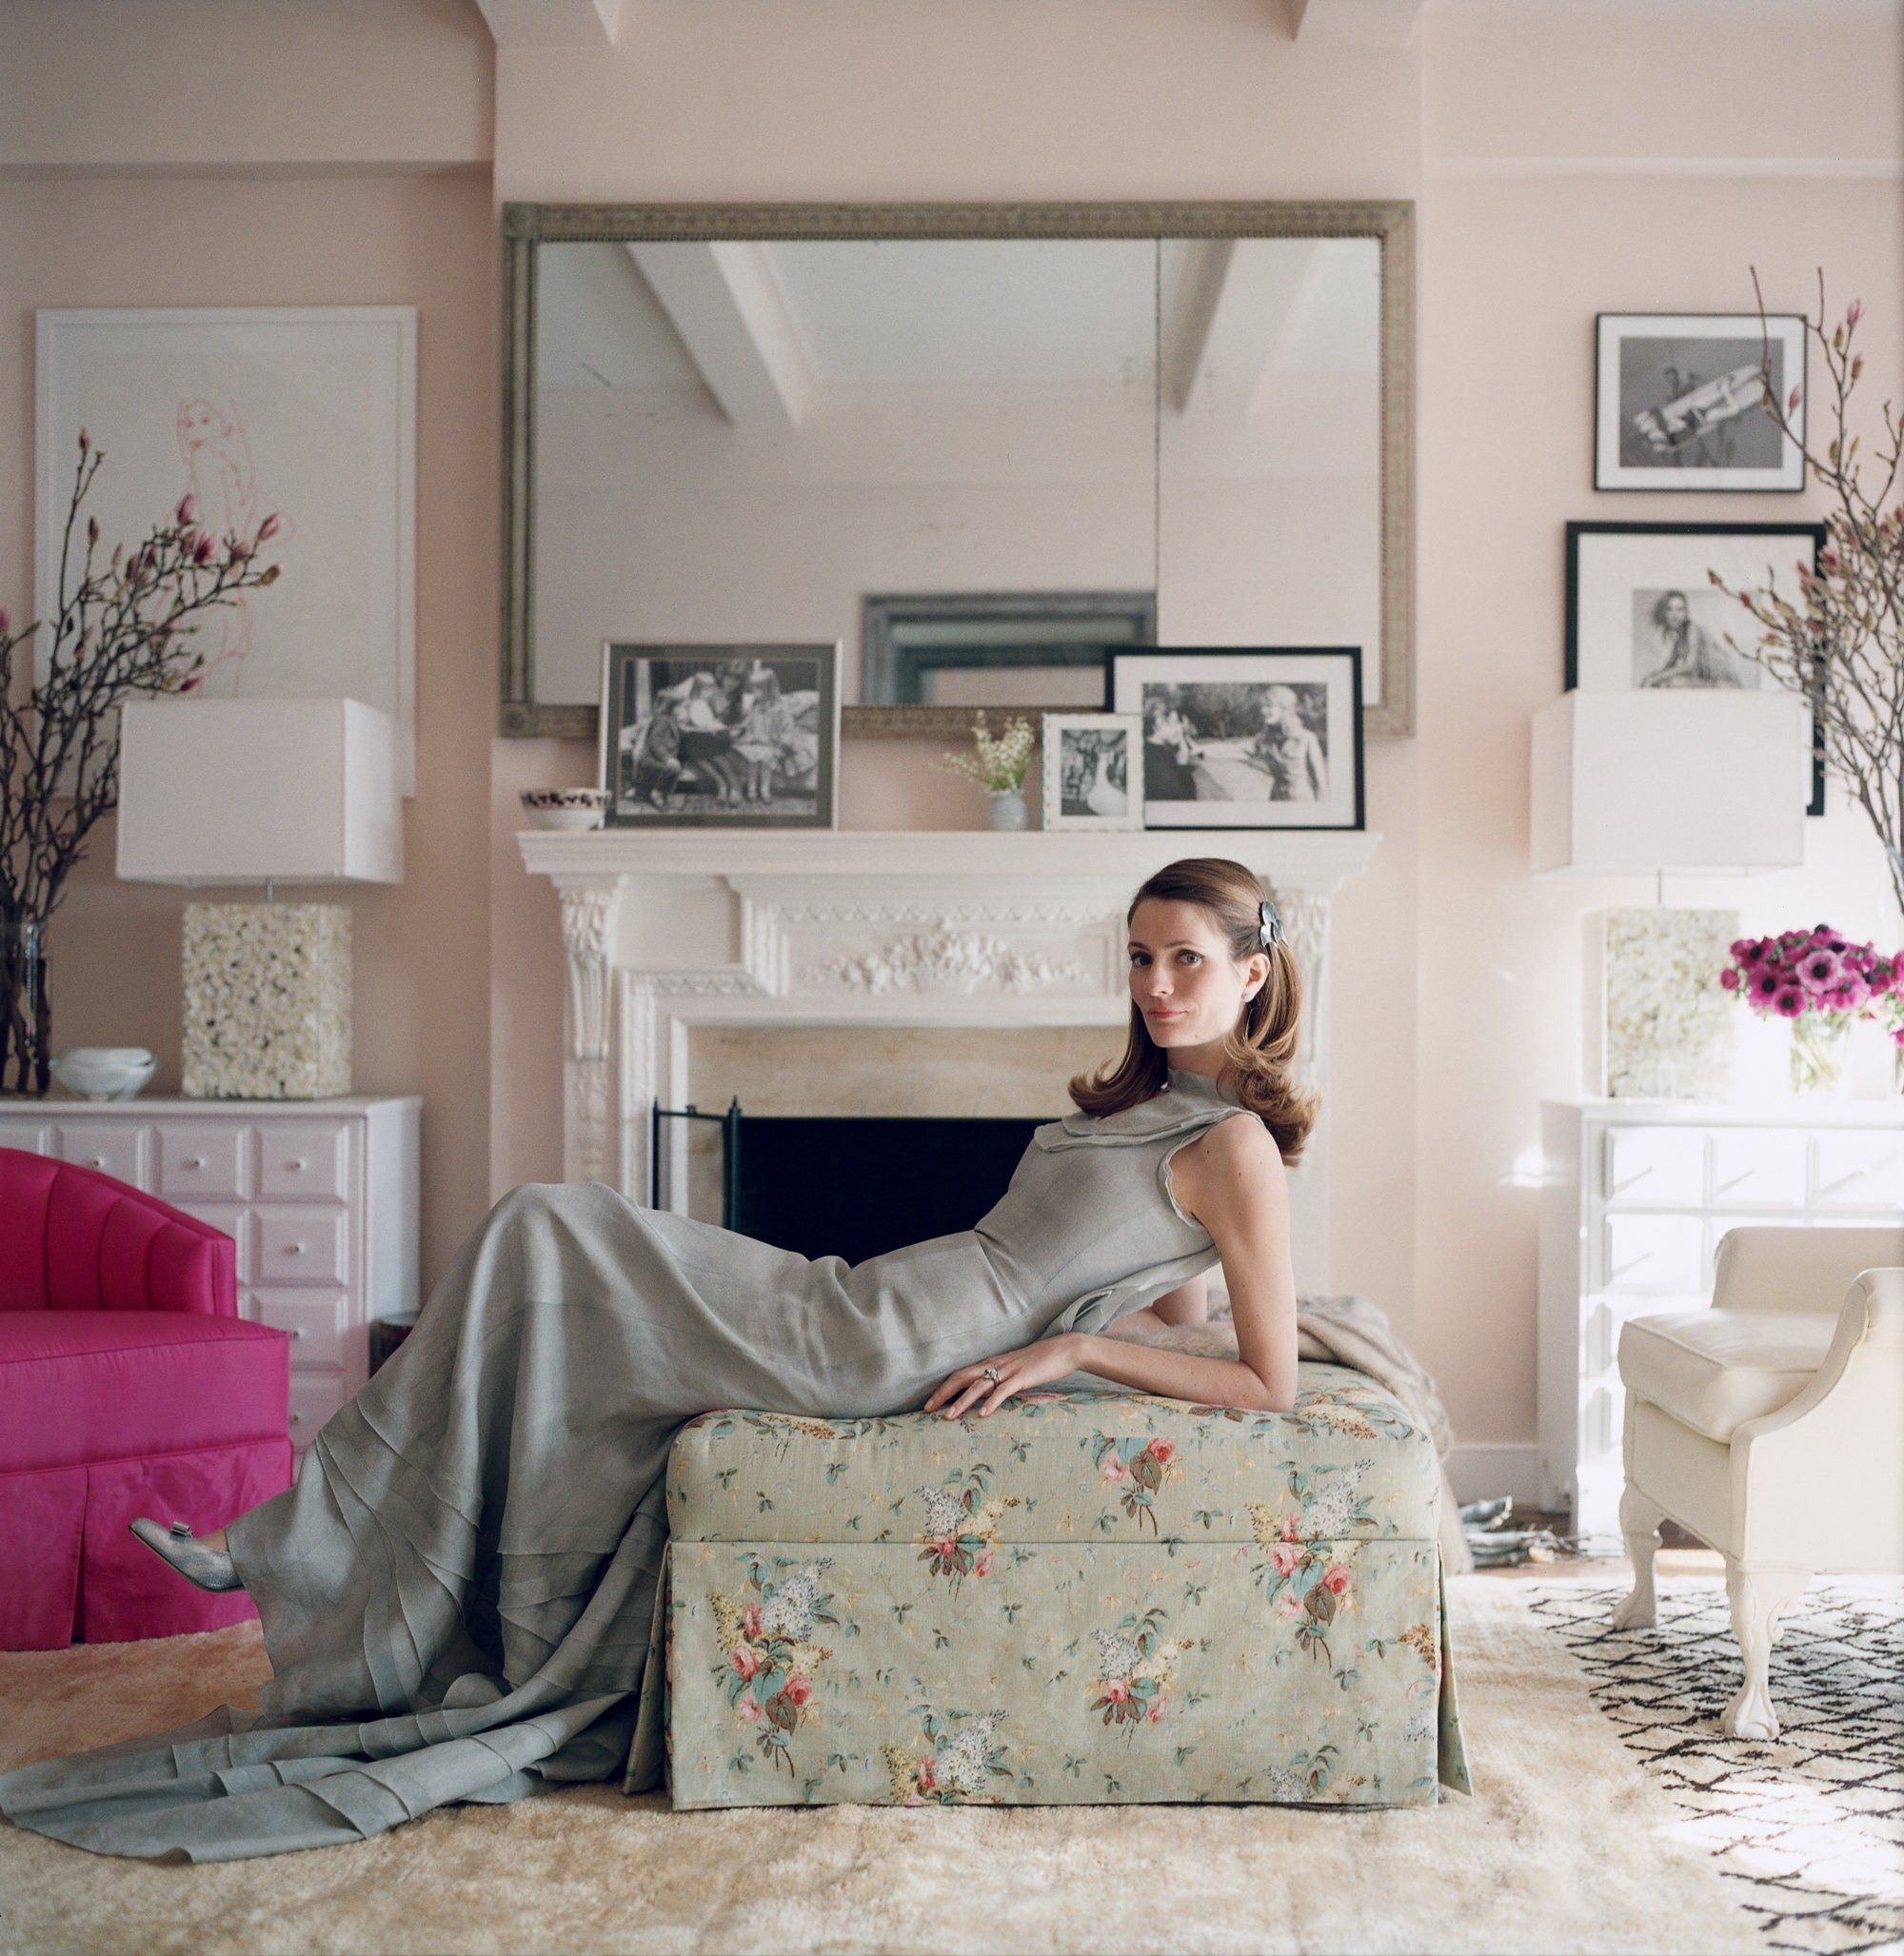 The Best Advice For Painting A Room: The Best Pink Paint Colors: _Vogue'_s Favorite Interior